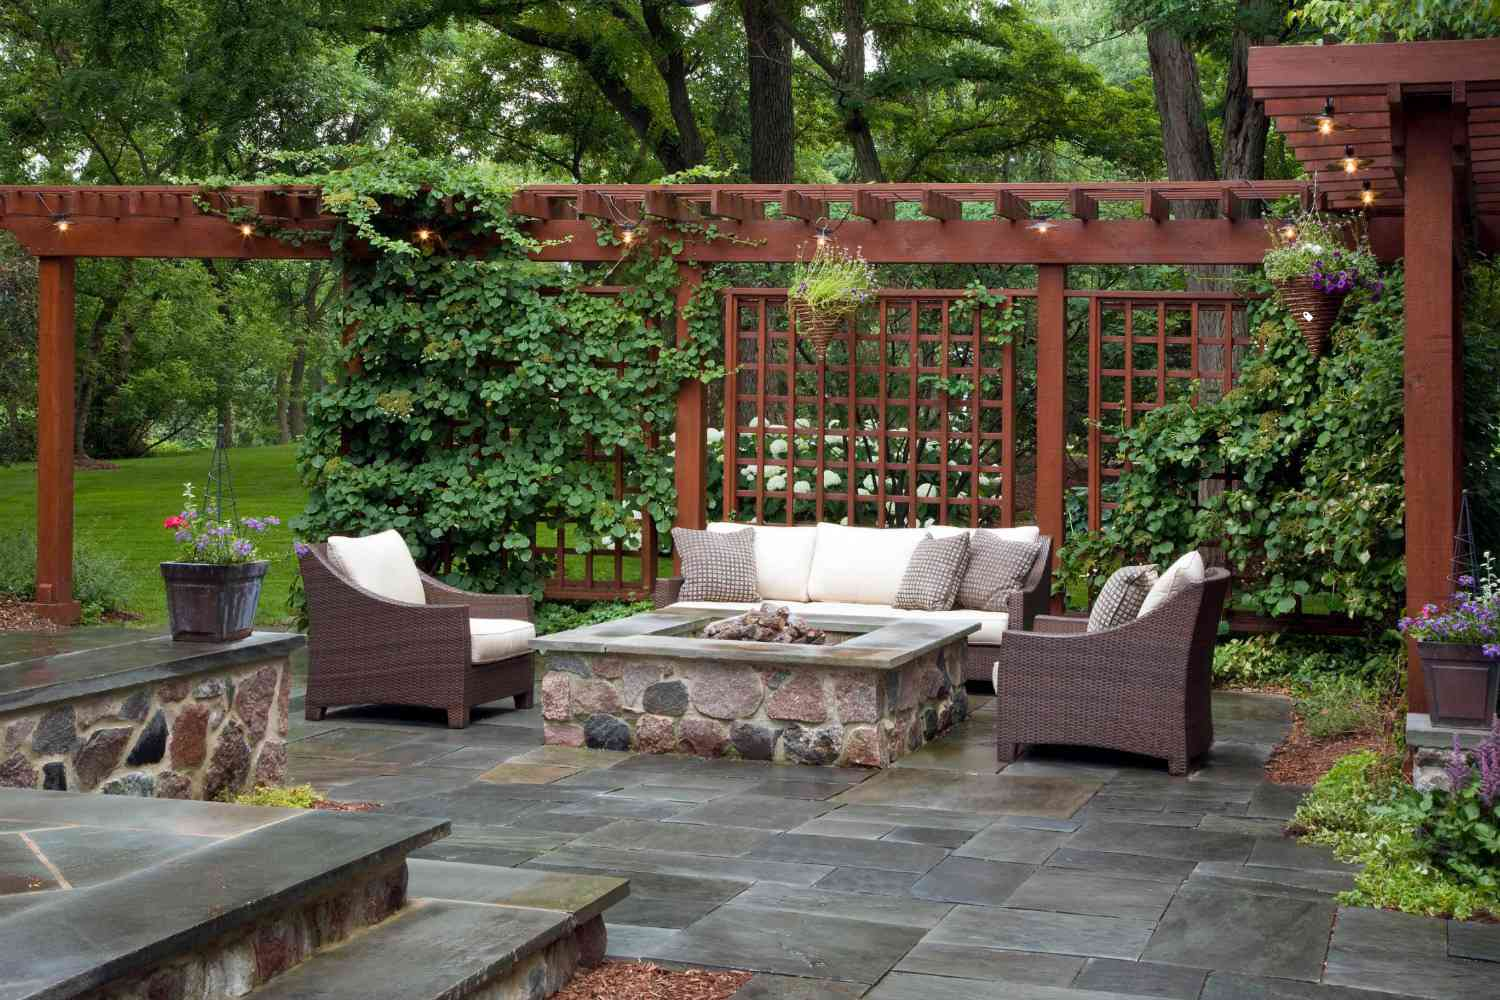 Best backyard landscaping ideas #35